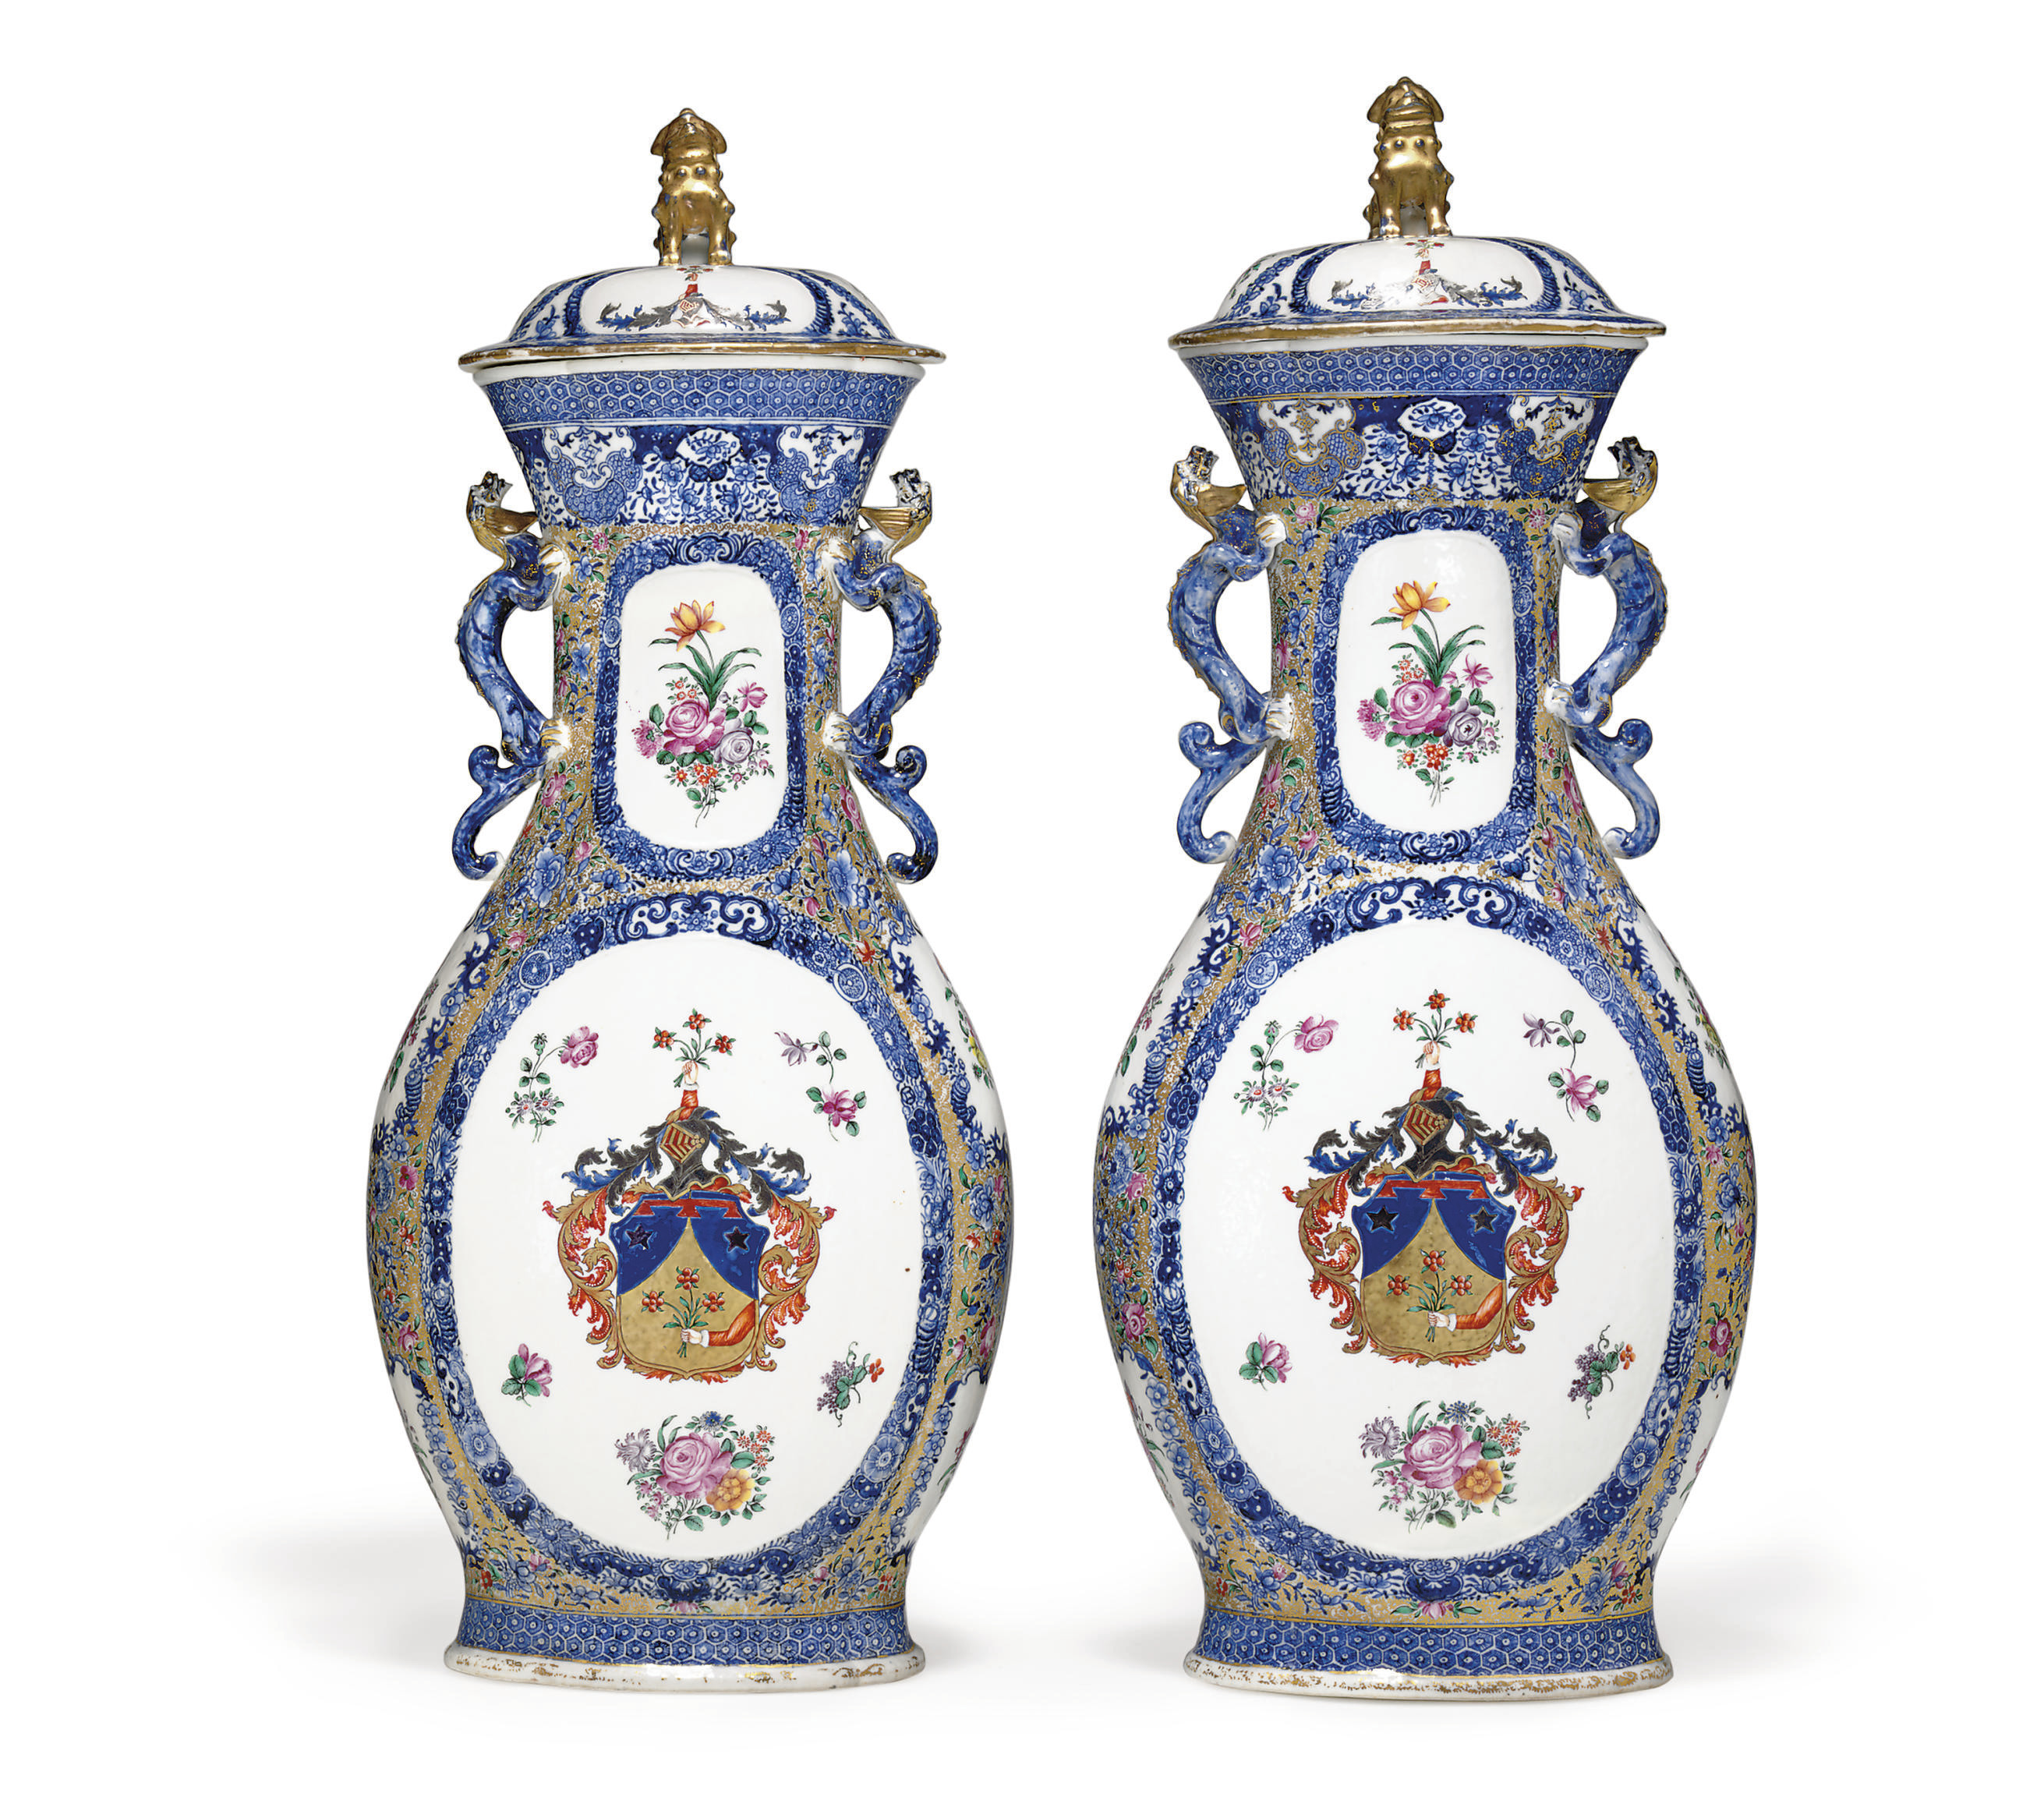 A VERY LARGE PAIR OF ARMORIAL VASES AND COVERS